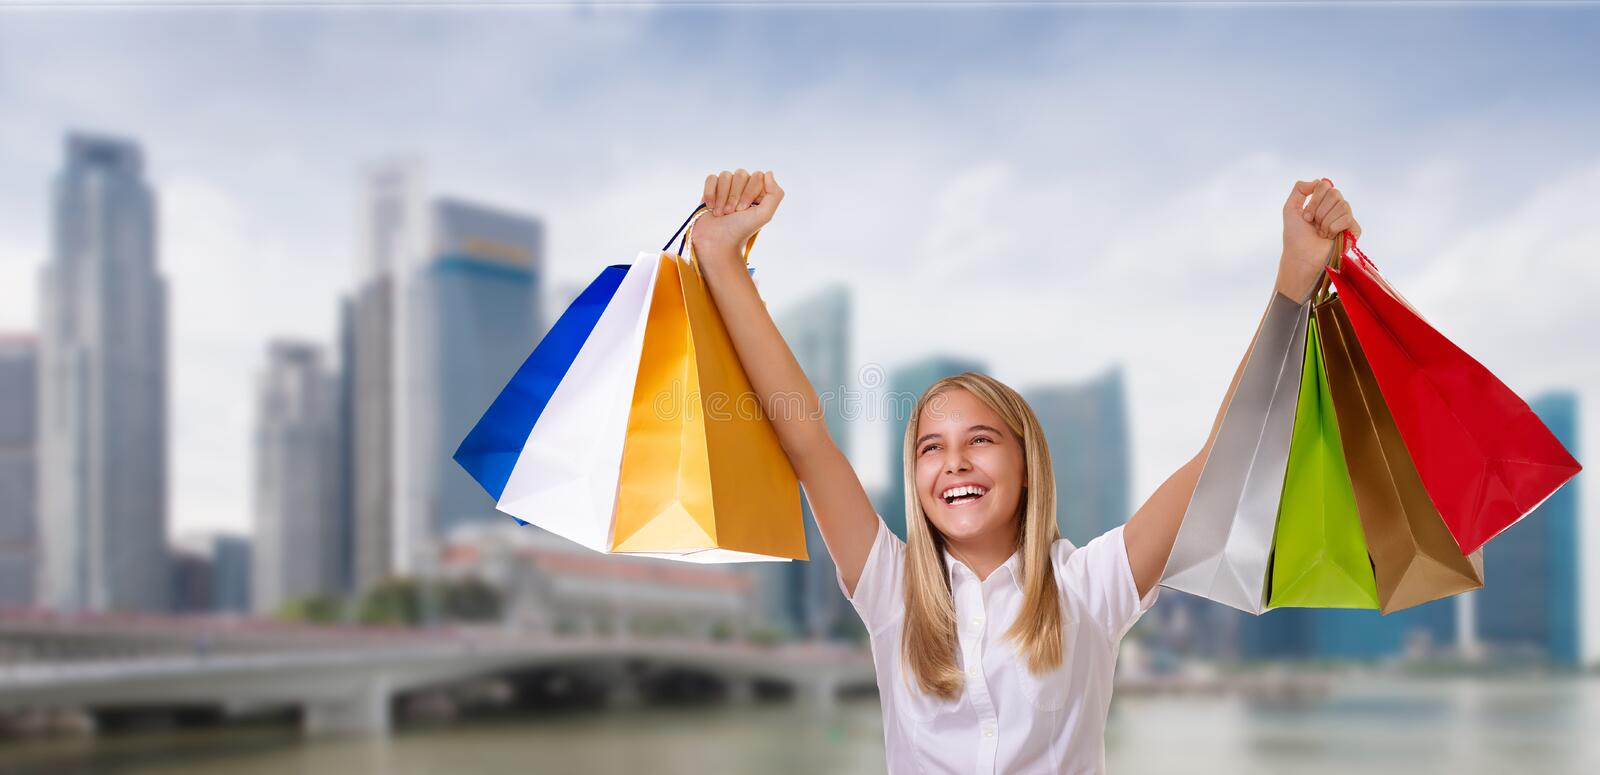 Shopping,holiday and tourism concept - young cheerful girl with shopping bags over city background stock image